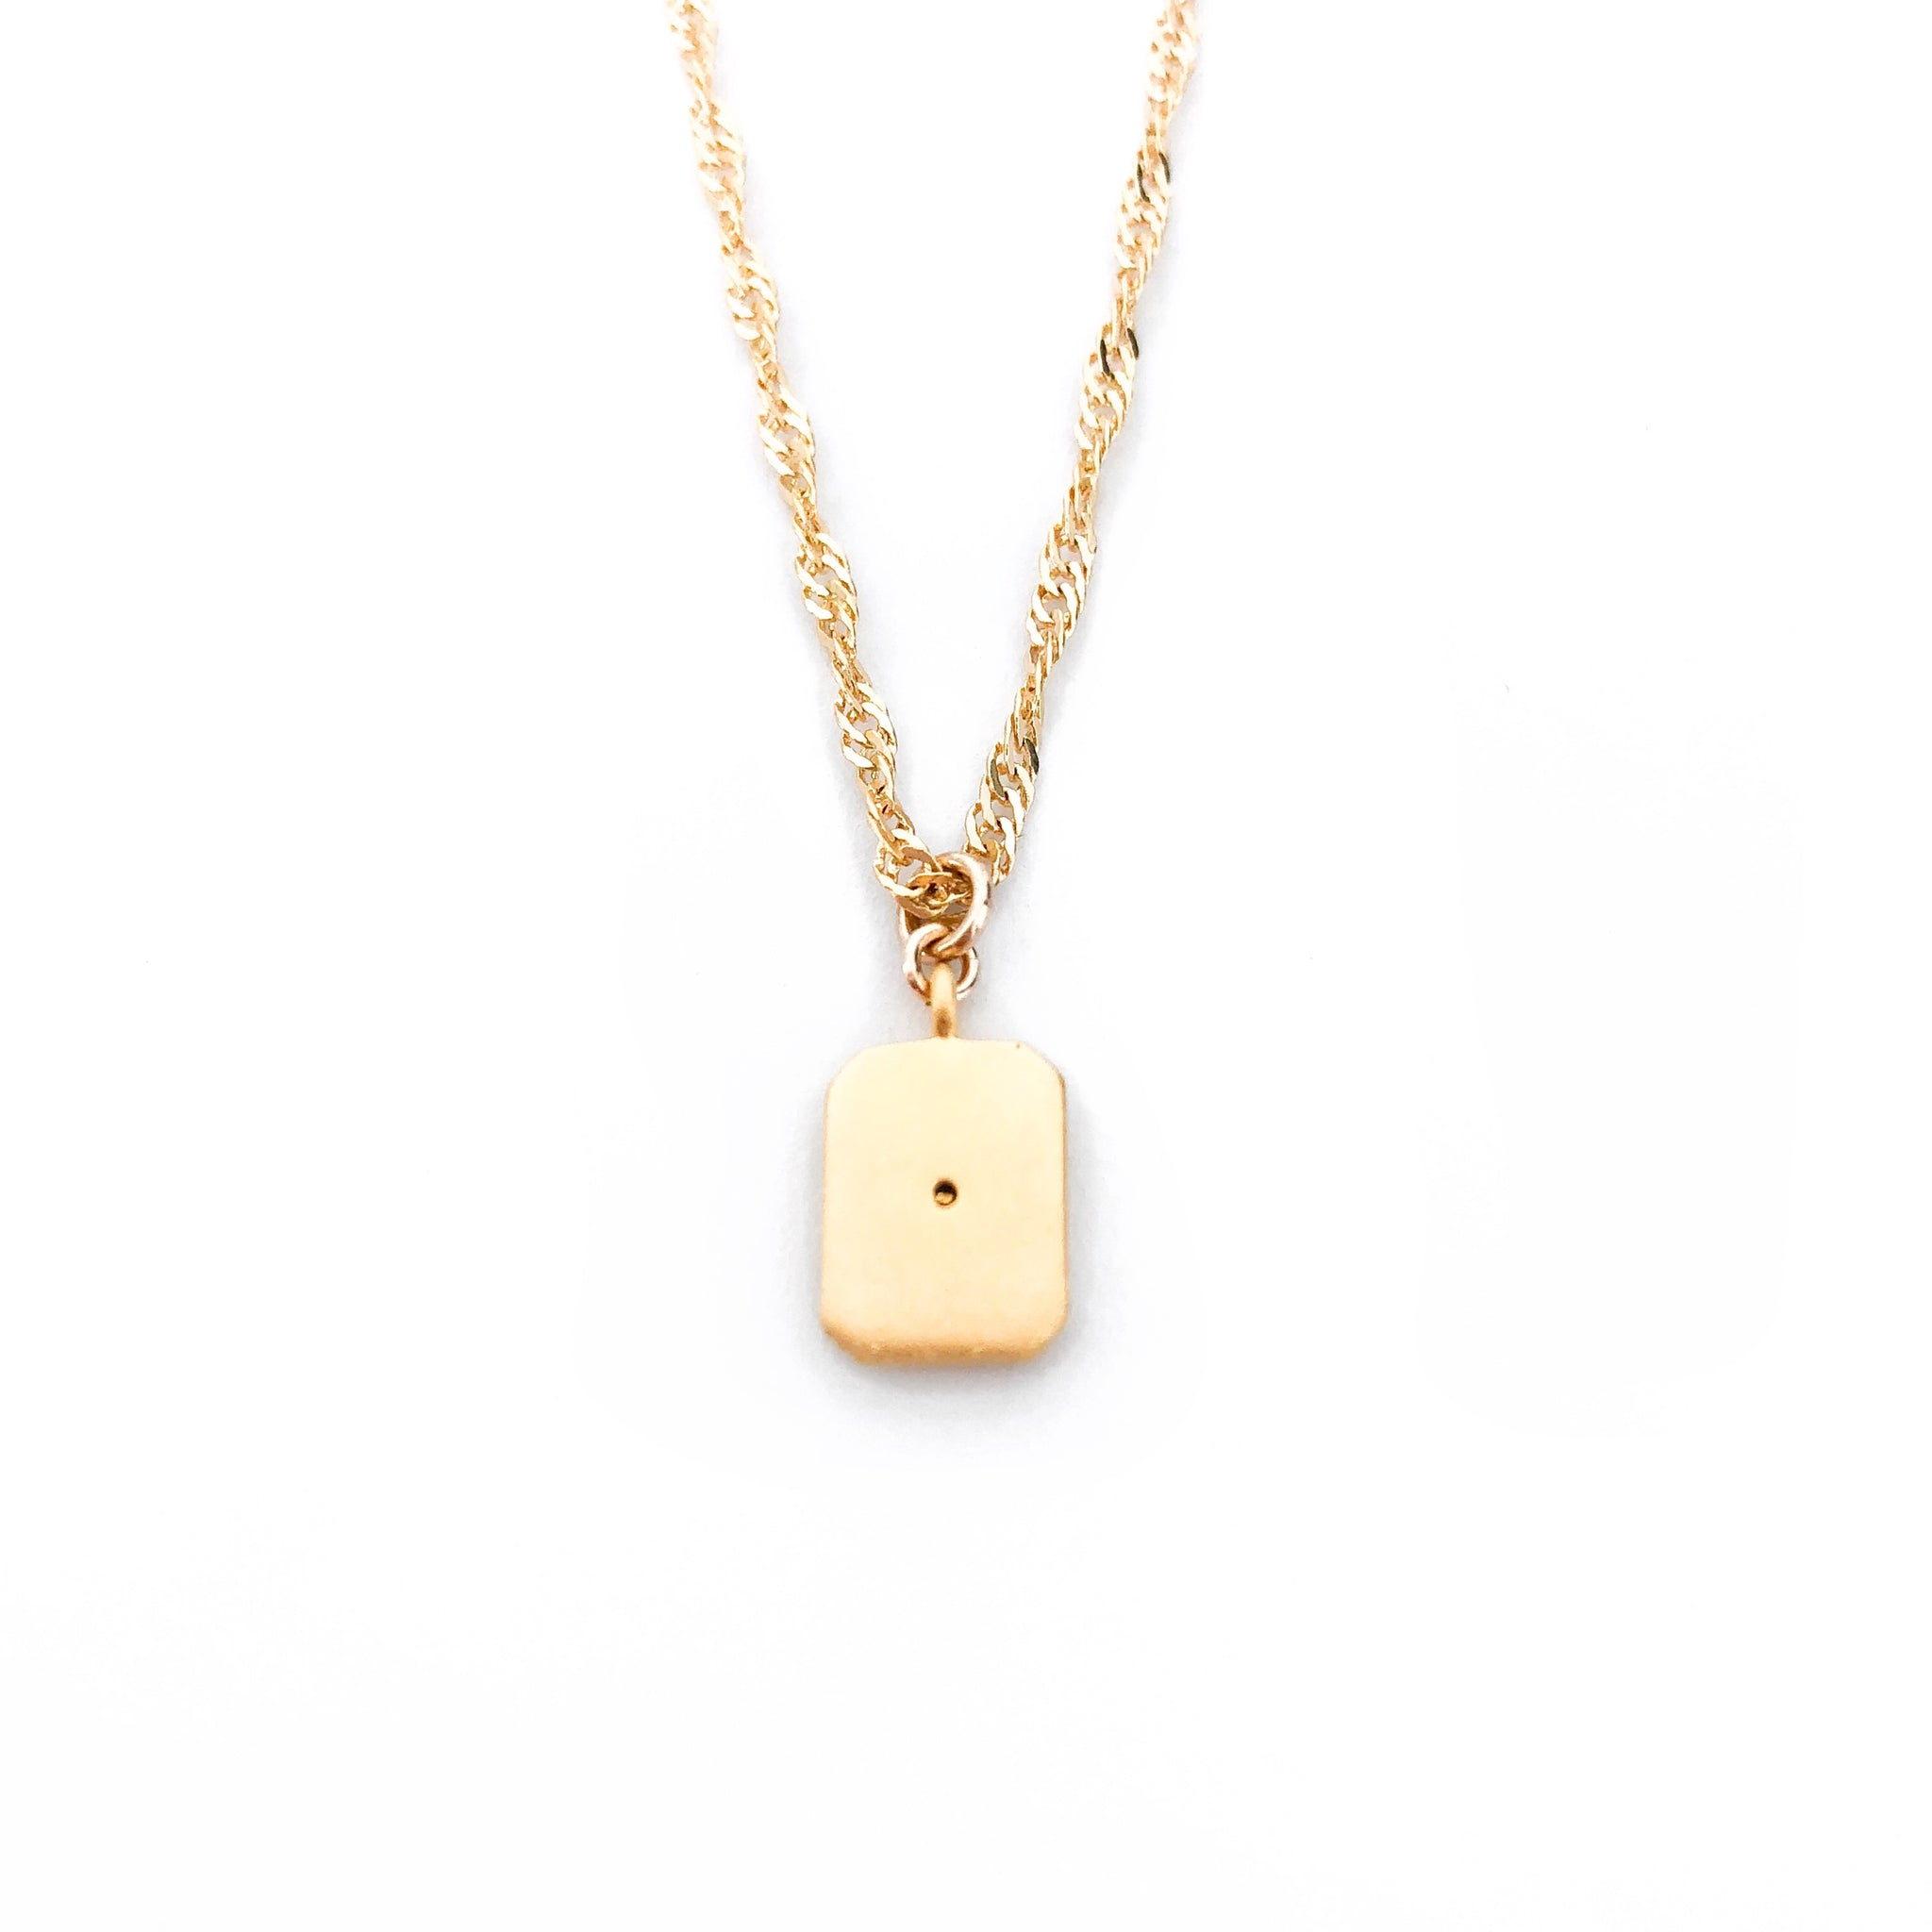 Kira Pendant Necklace - C.Dahl Jewelry | ShopCDahl